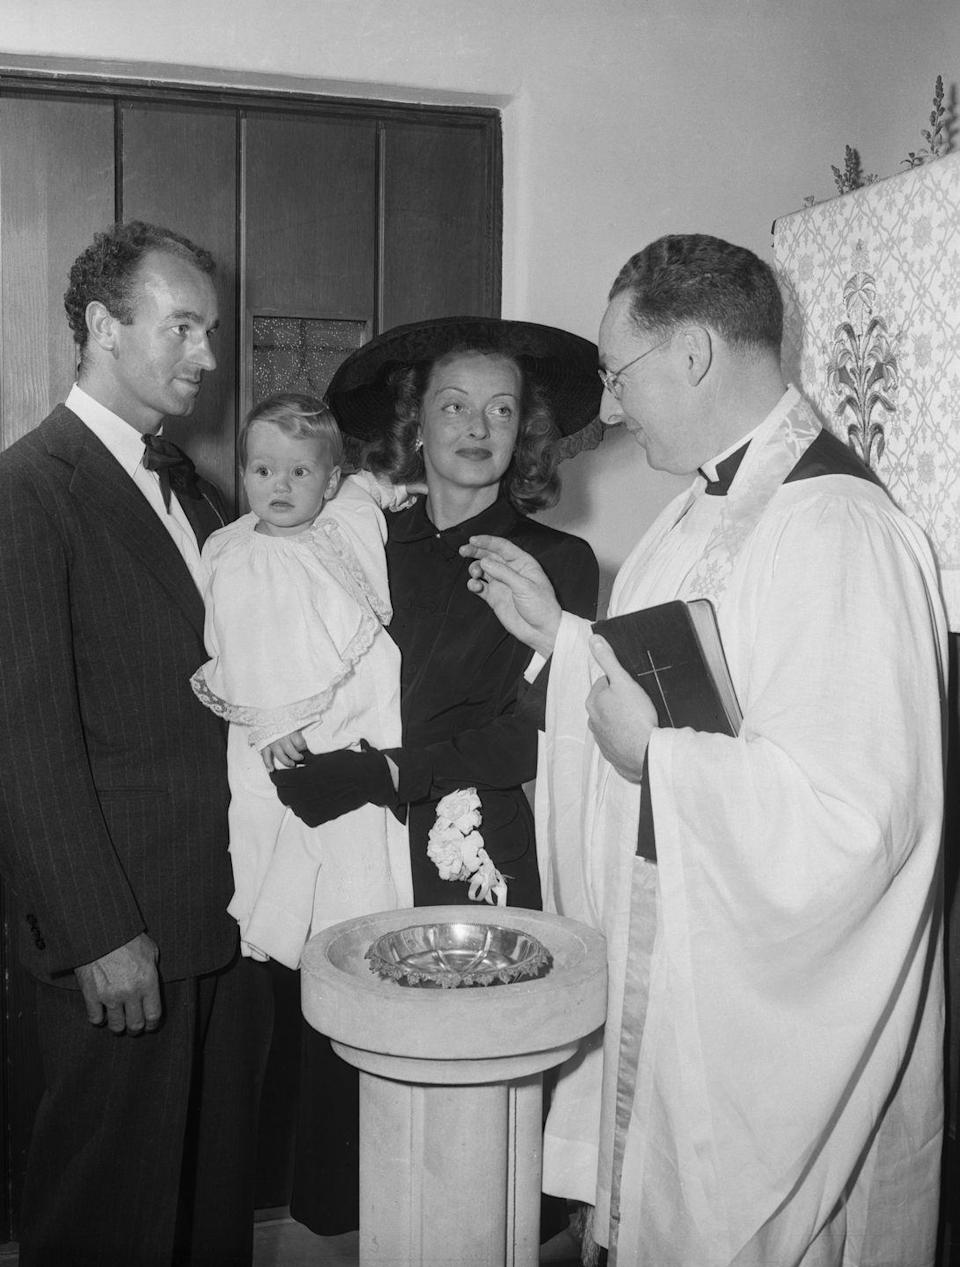 <p>Many Christian churches will hold a christening during services on Easter Sunday for an extra meaningful ritual. Bette Davis and William Grant Sherry baptized their daughter, Barbara Davis Sherry, on Easter 1948.</p>